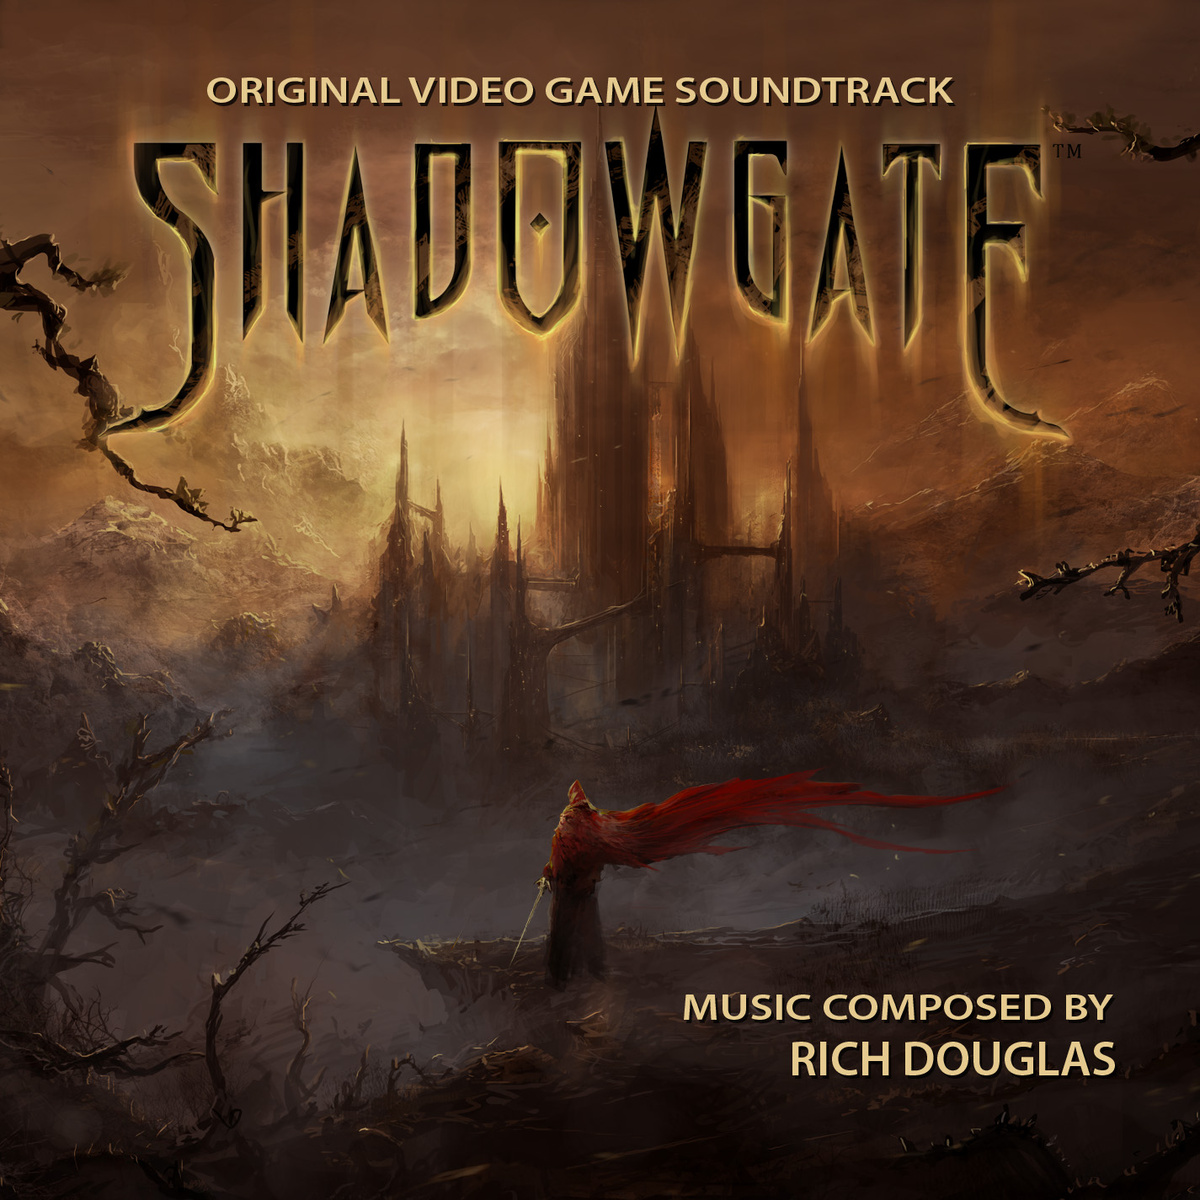 Original motion picture soundtrack), featuring music by marcelos zarvos